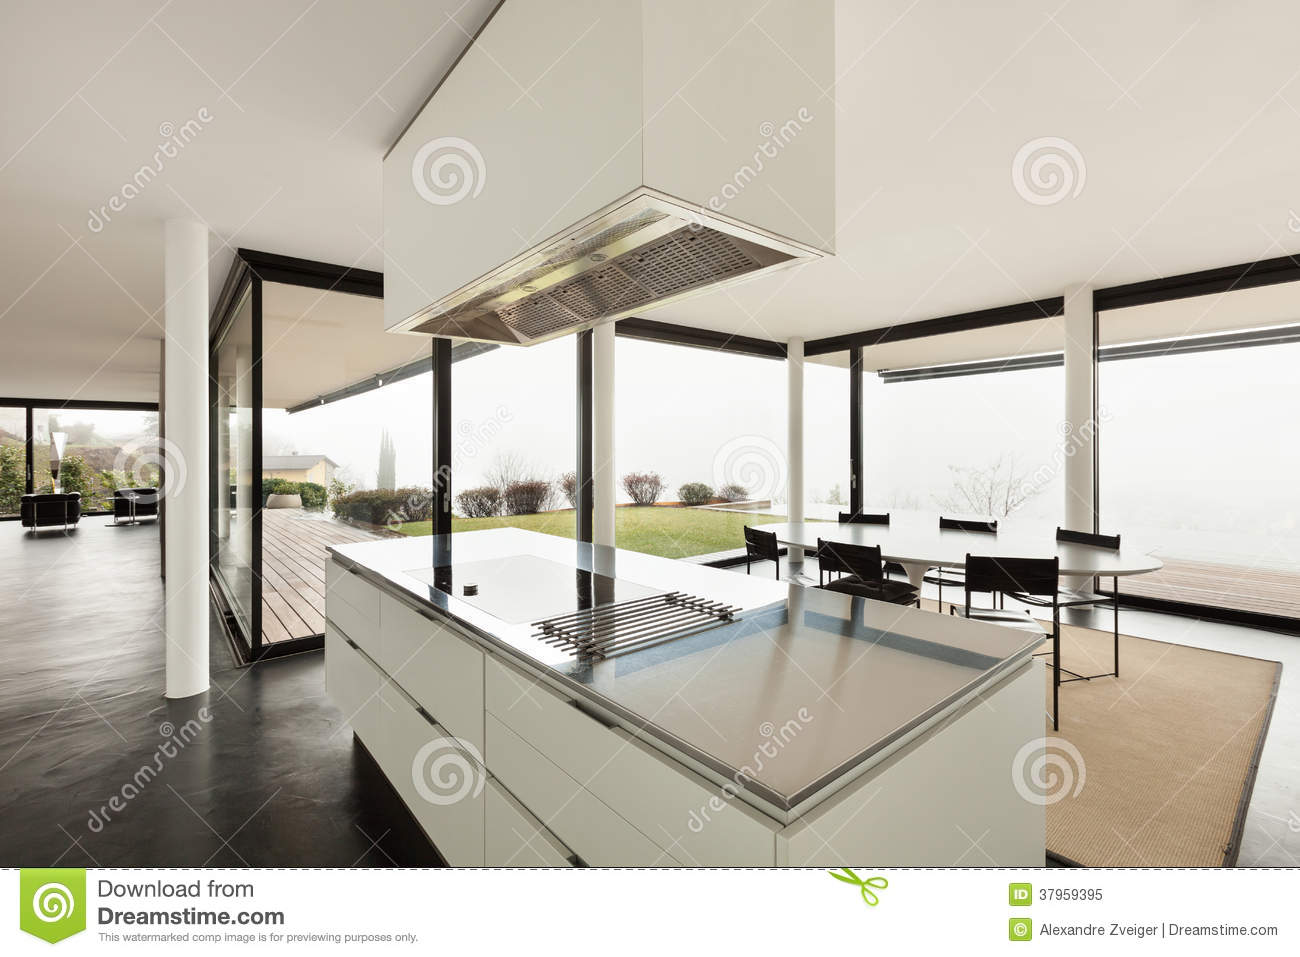 Architecture, Interior Of A Modern Villa Stock Image - Image of ...